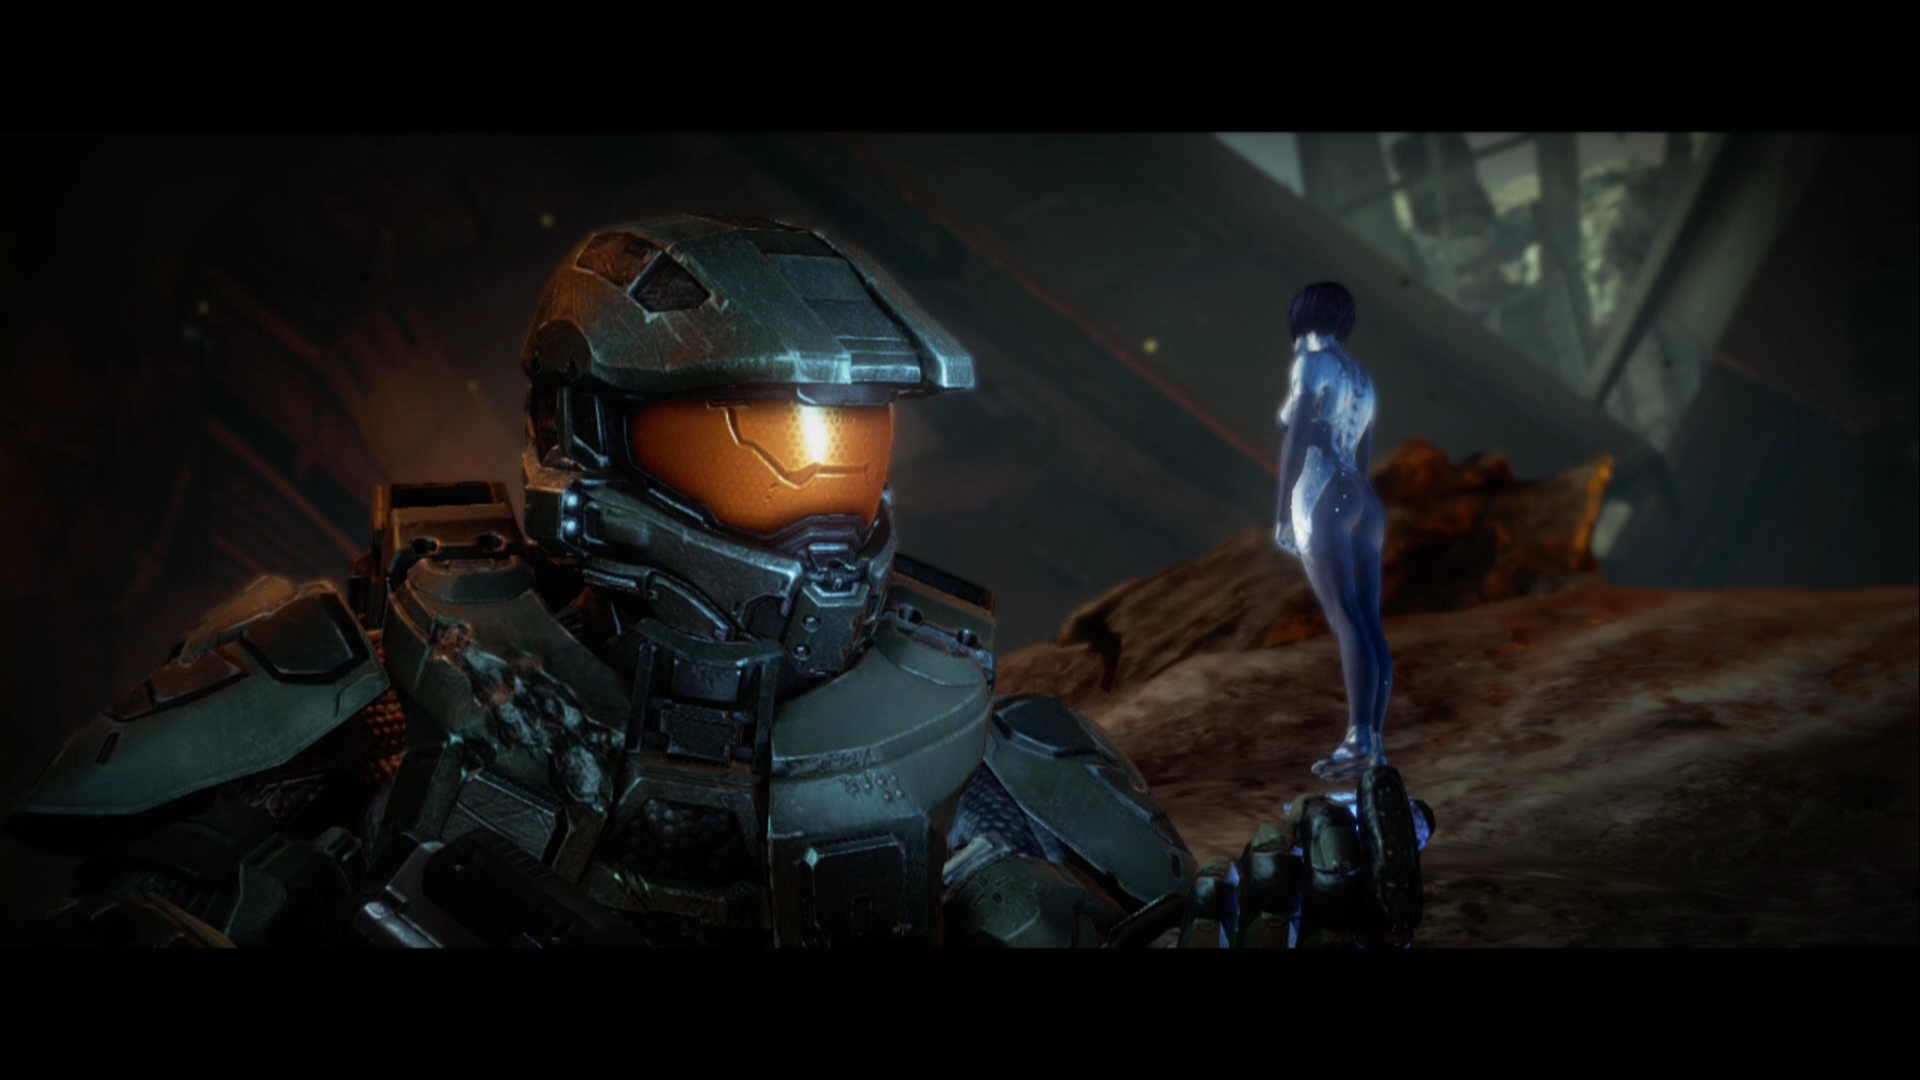 Halo 4 Xbox 360 Scene from the opening cinematic for the second campaign mission